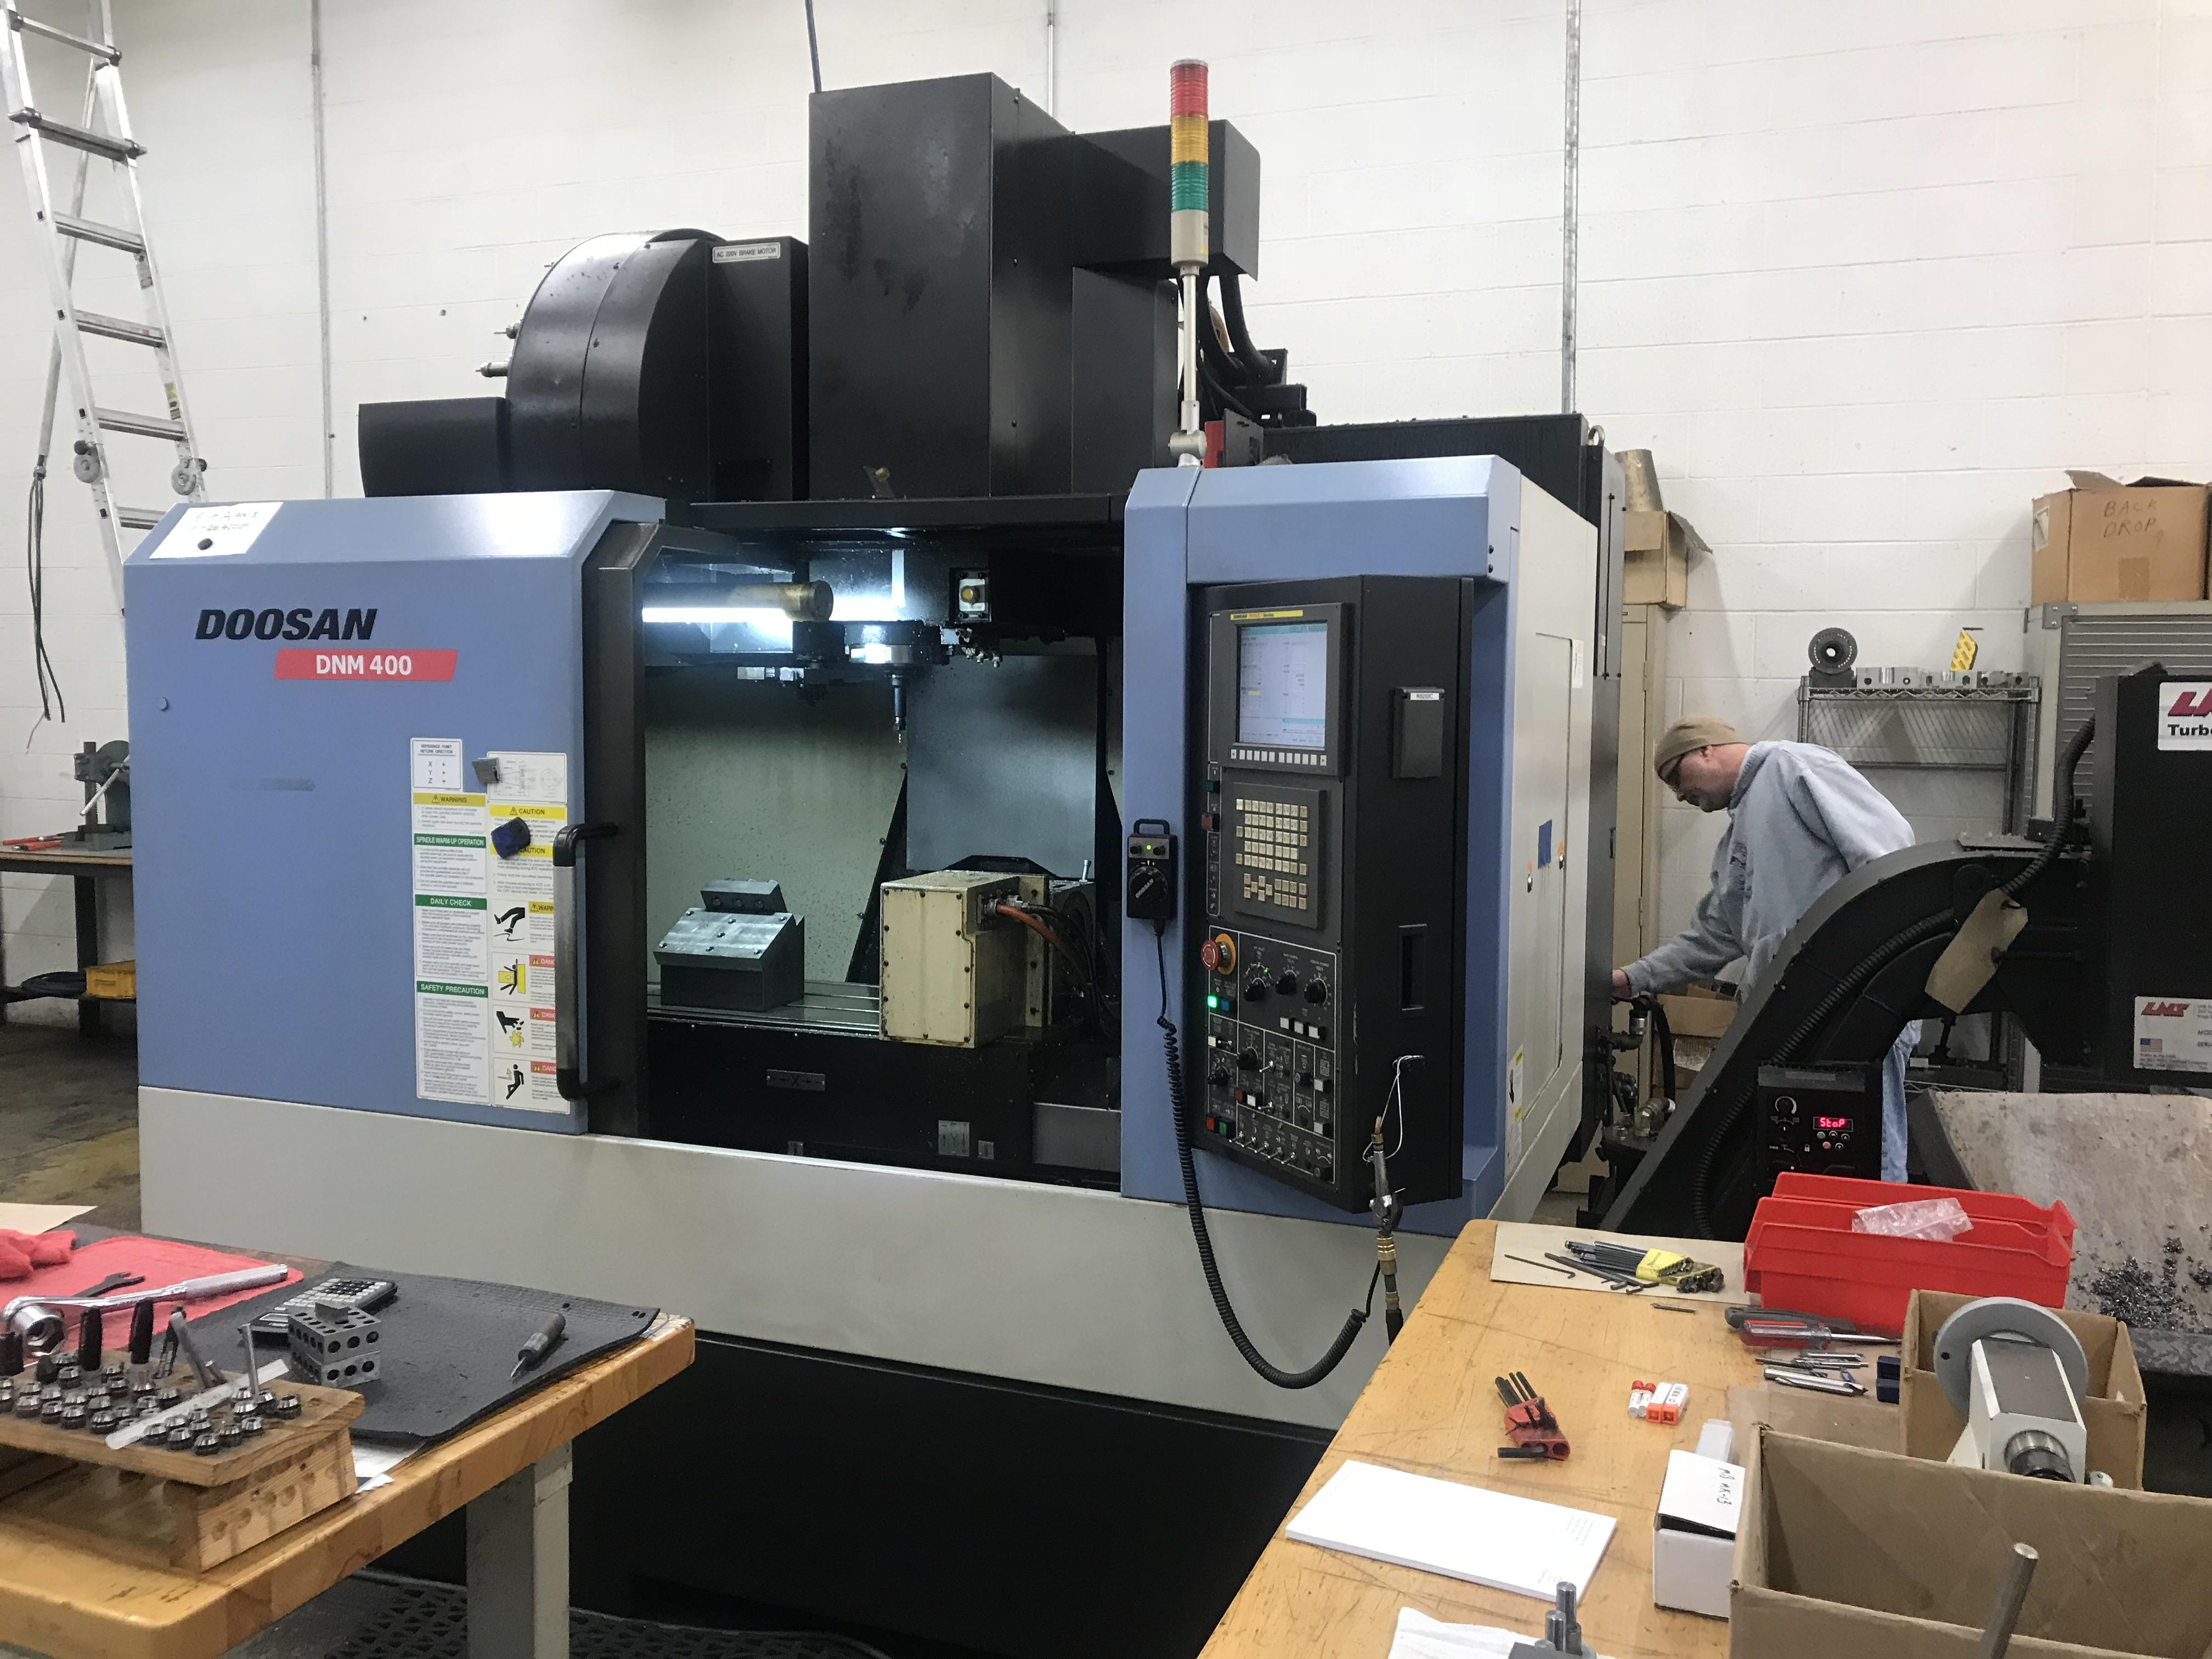 "Doosan DNM-400 CNC Vertical Machining Center, Fanuc Series i, 30""x/17""y/20""z, 8K Spindle, 30 ATC, Hi-Pressure Coolant Thru Spindle, 4th Axis Rotary, Chip Conveyor, Very Low Hours, 2011"